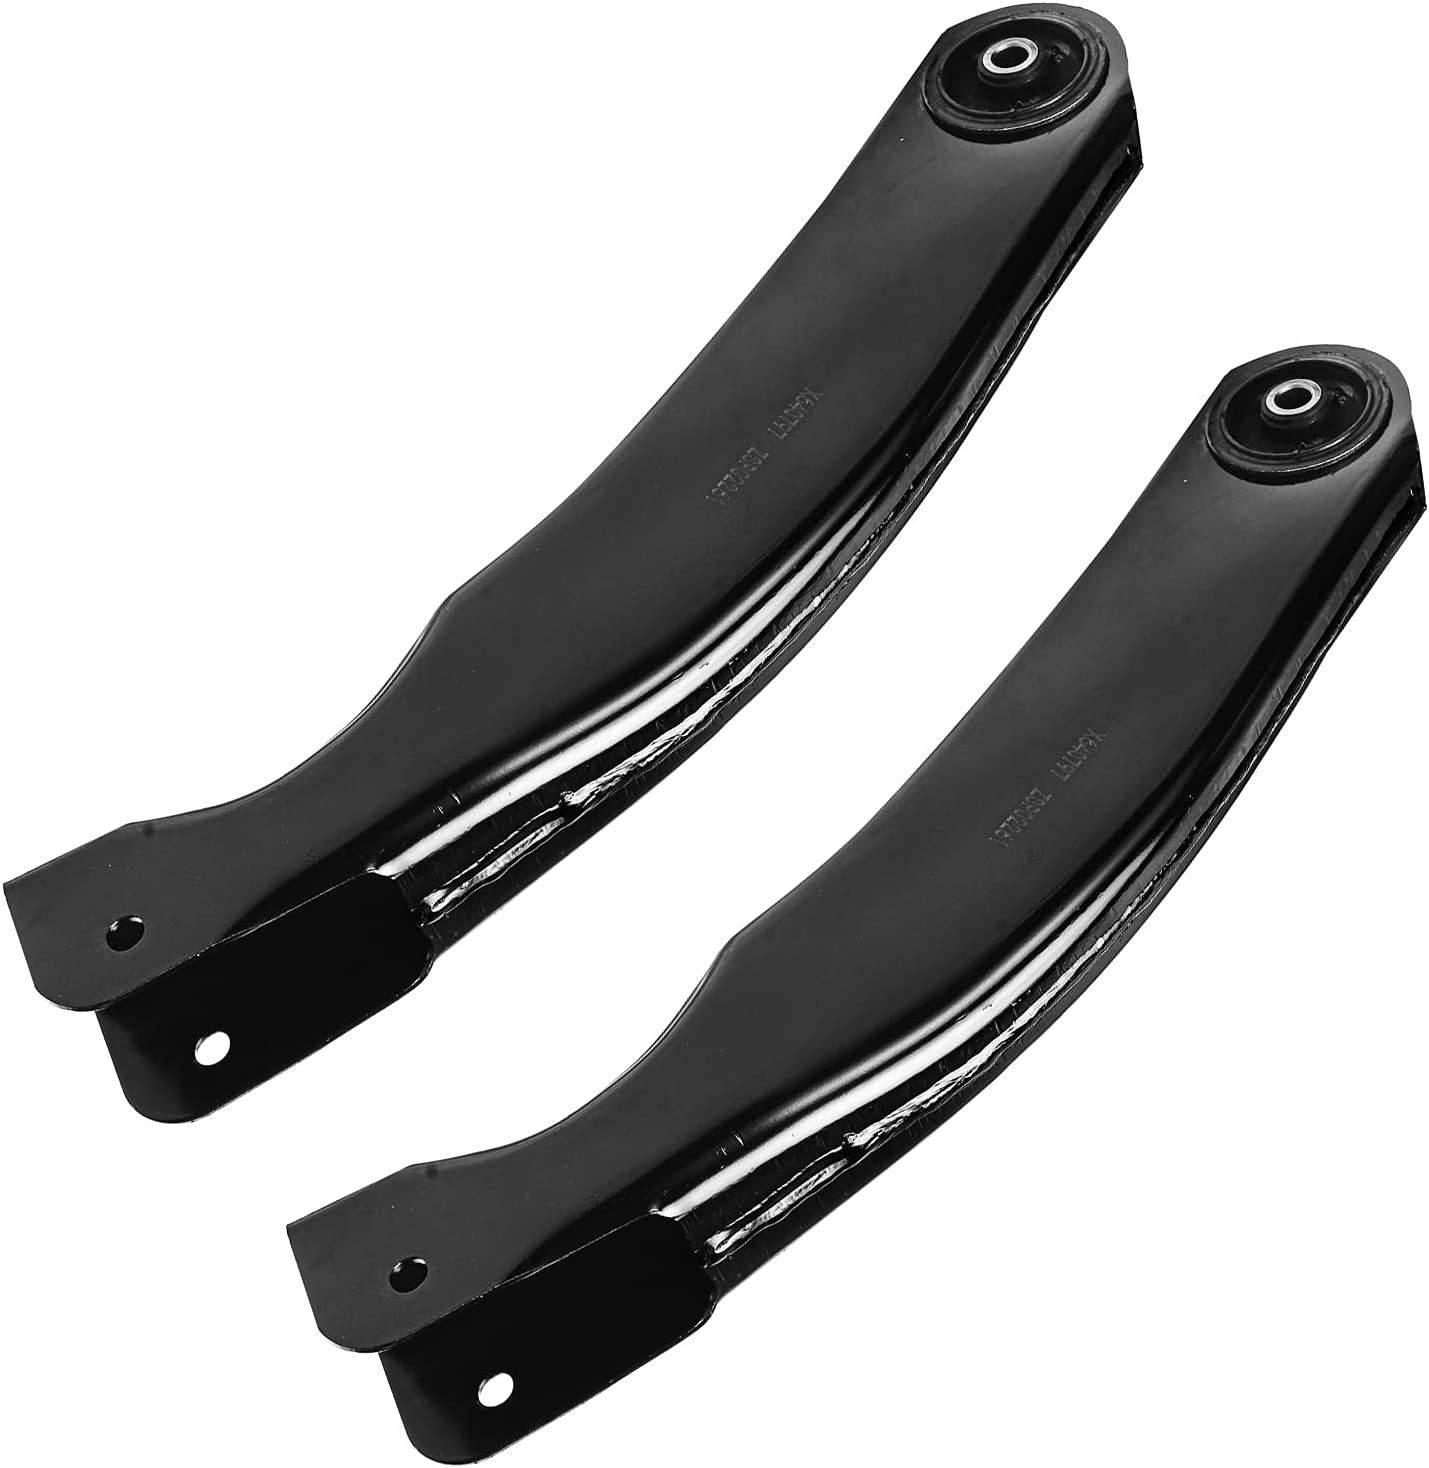 Detroit Axle - 2021 autumn and winter new Manufacturer OFFicial shop Both 2 Assembly Control Complete Position Arm